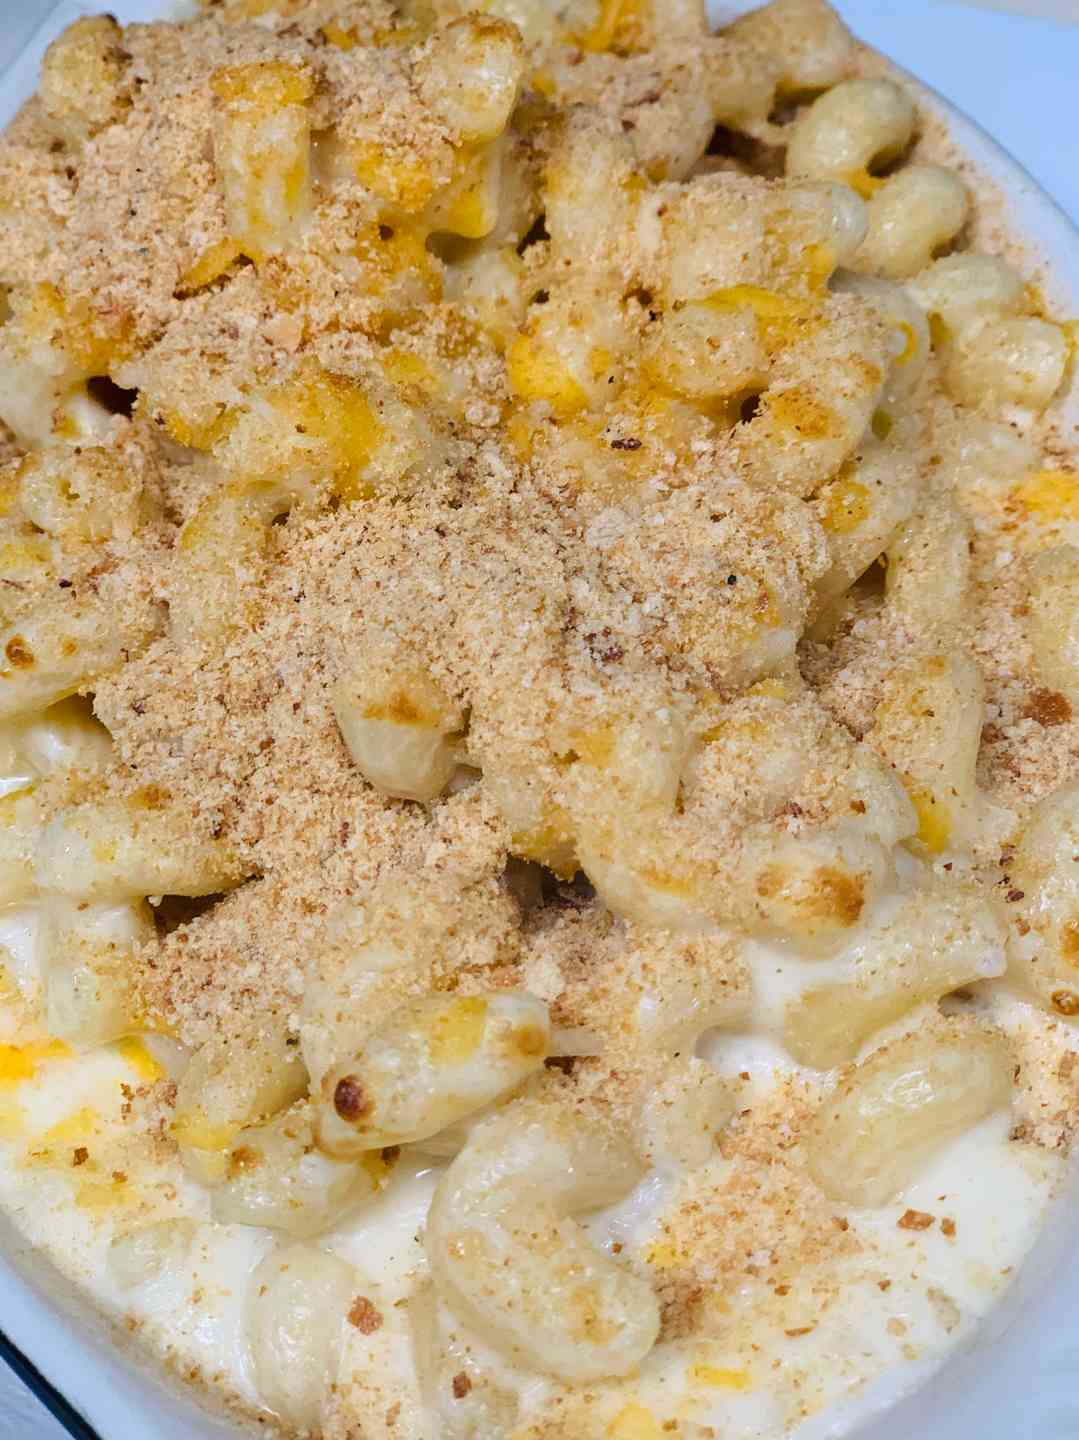 Local's Mac 'n' Cheese